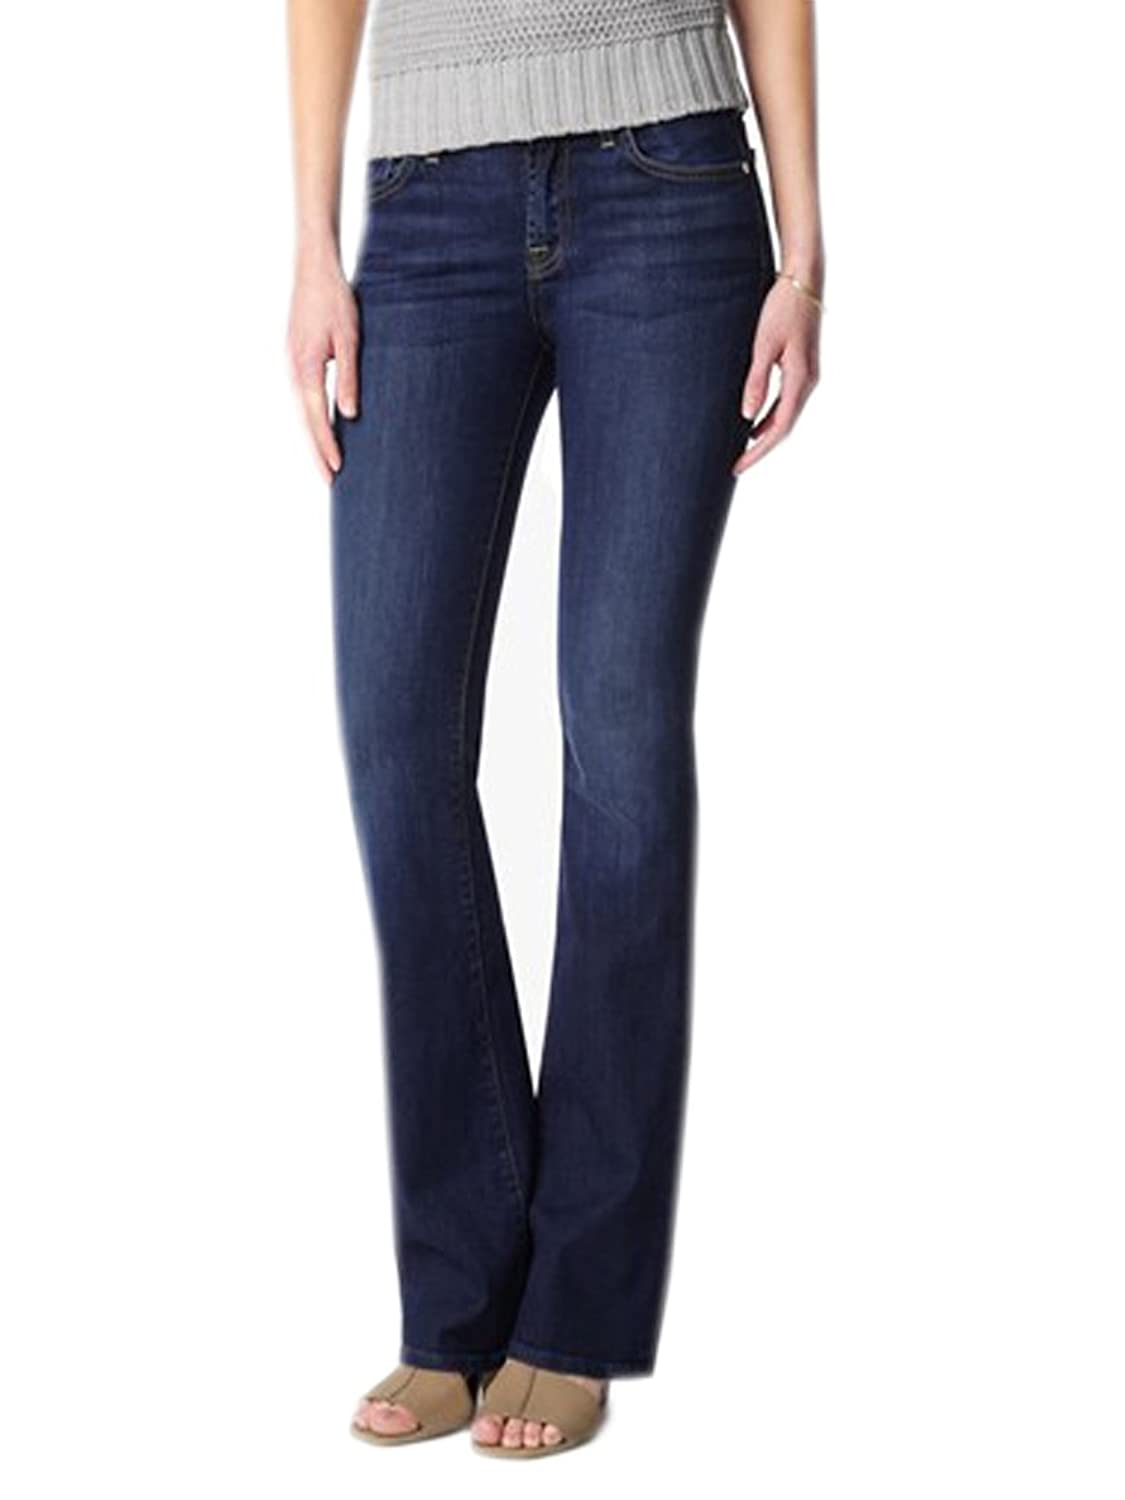 7 For All Mankind Women''s GSLG RUY Bootcut Denim Jeans